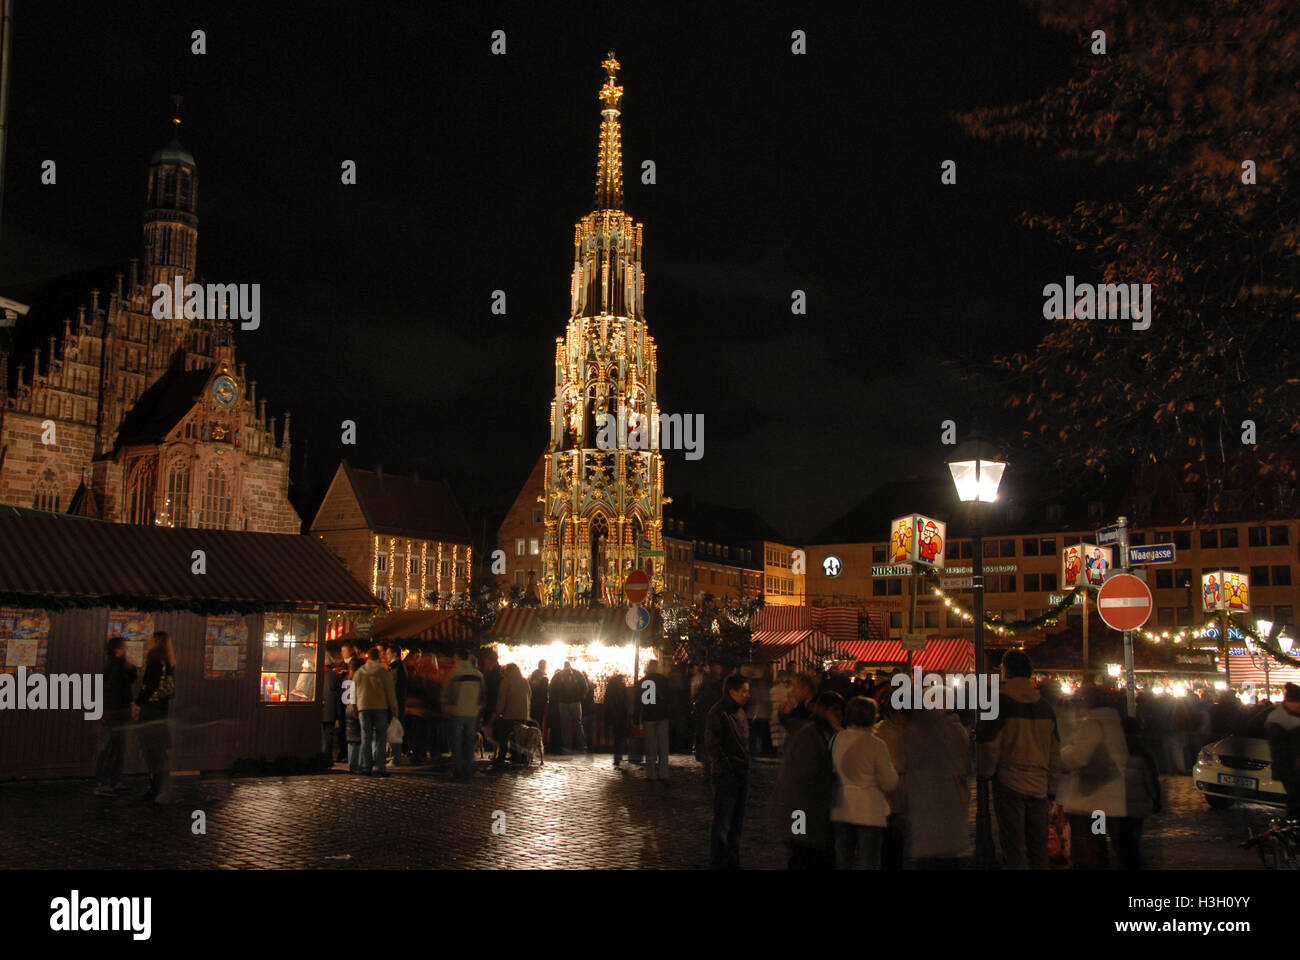 The flood lit 14th century, 19 meters tall  fountain, 'Schoner Brunnen' is permanently located in  the busy - Stock Image